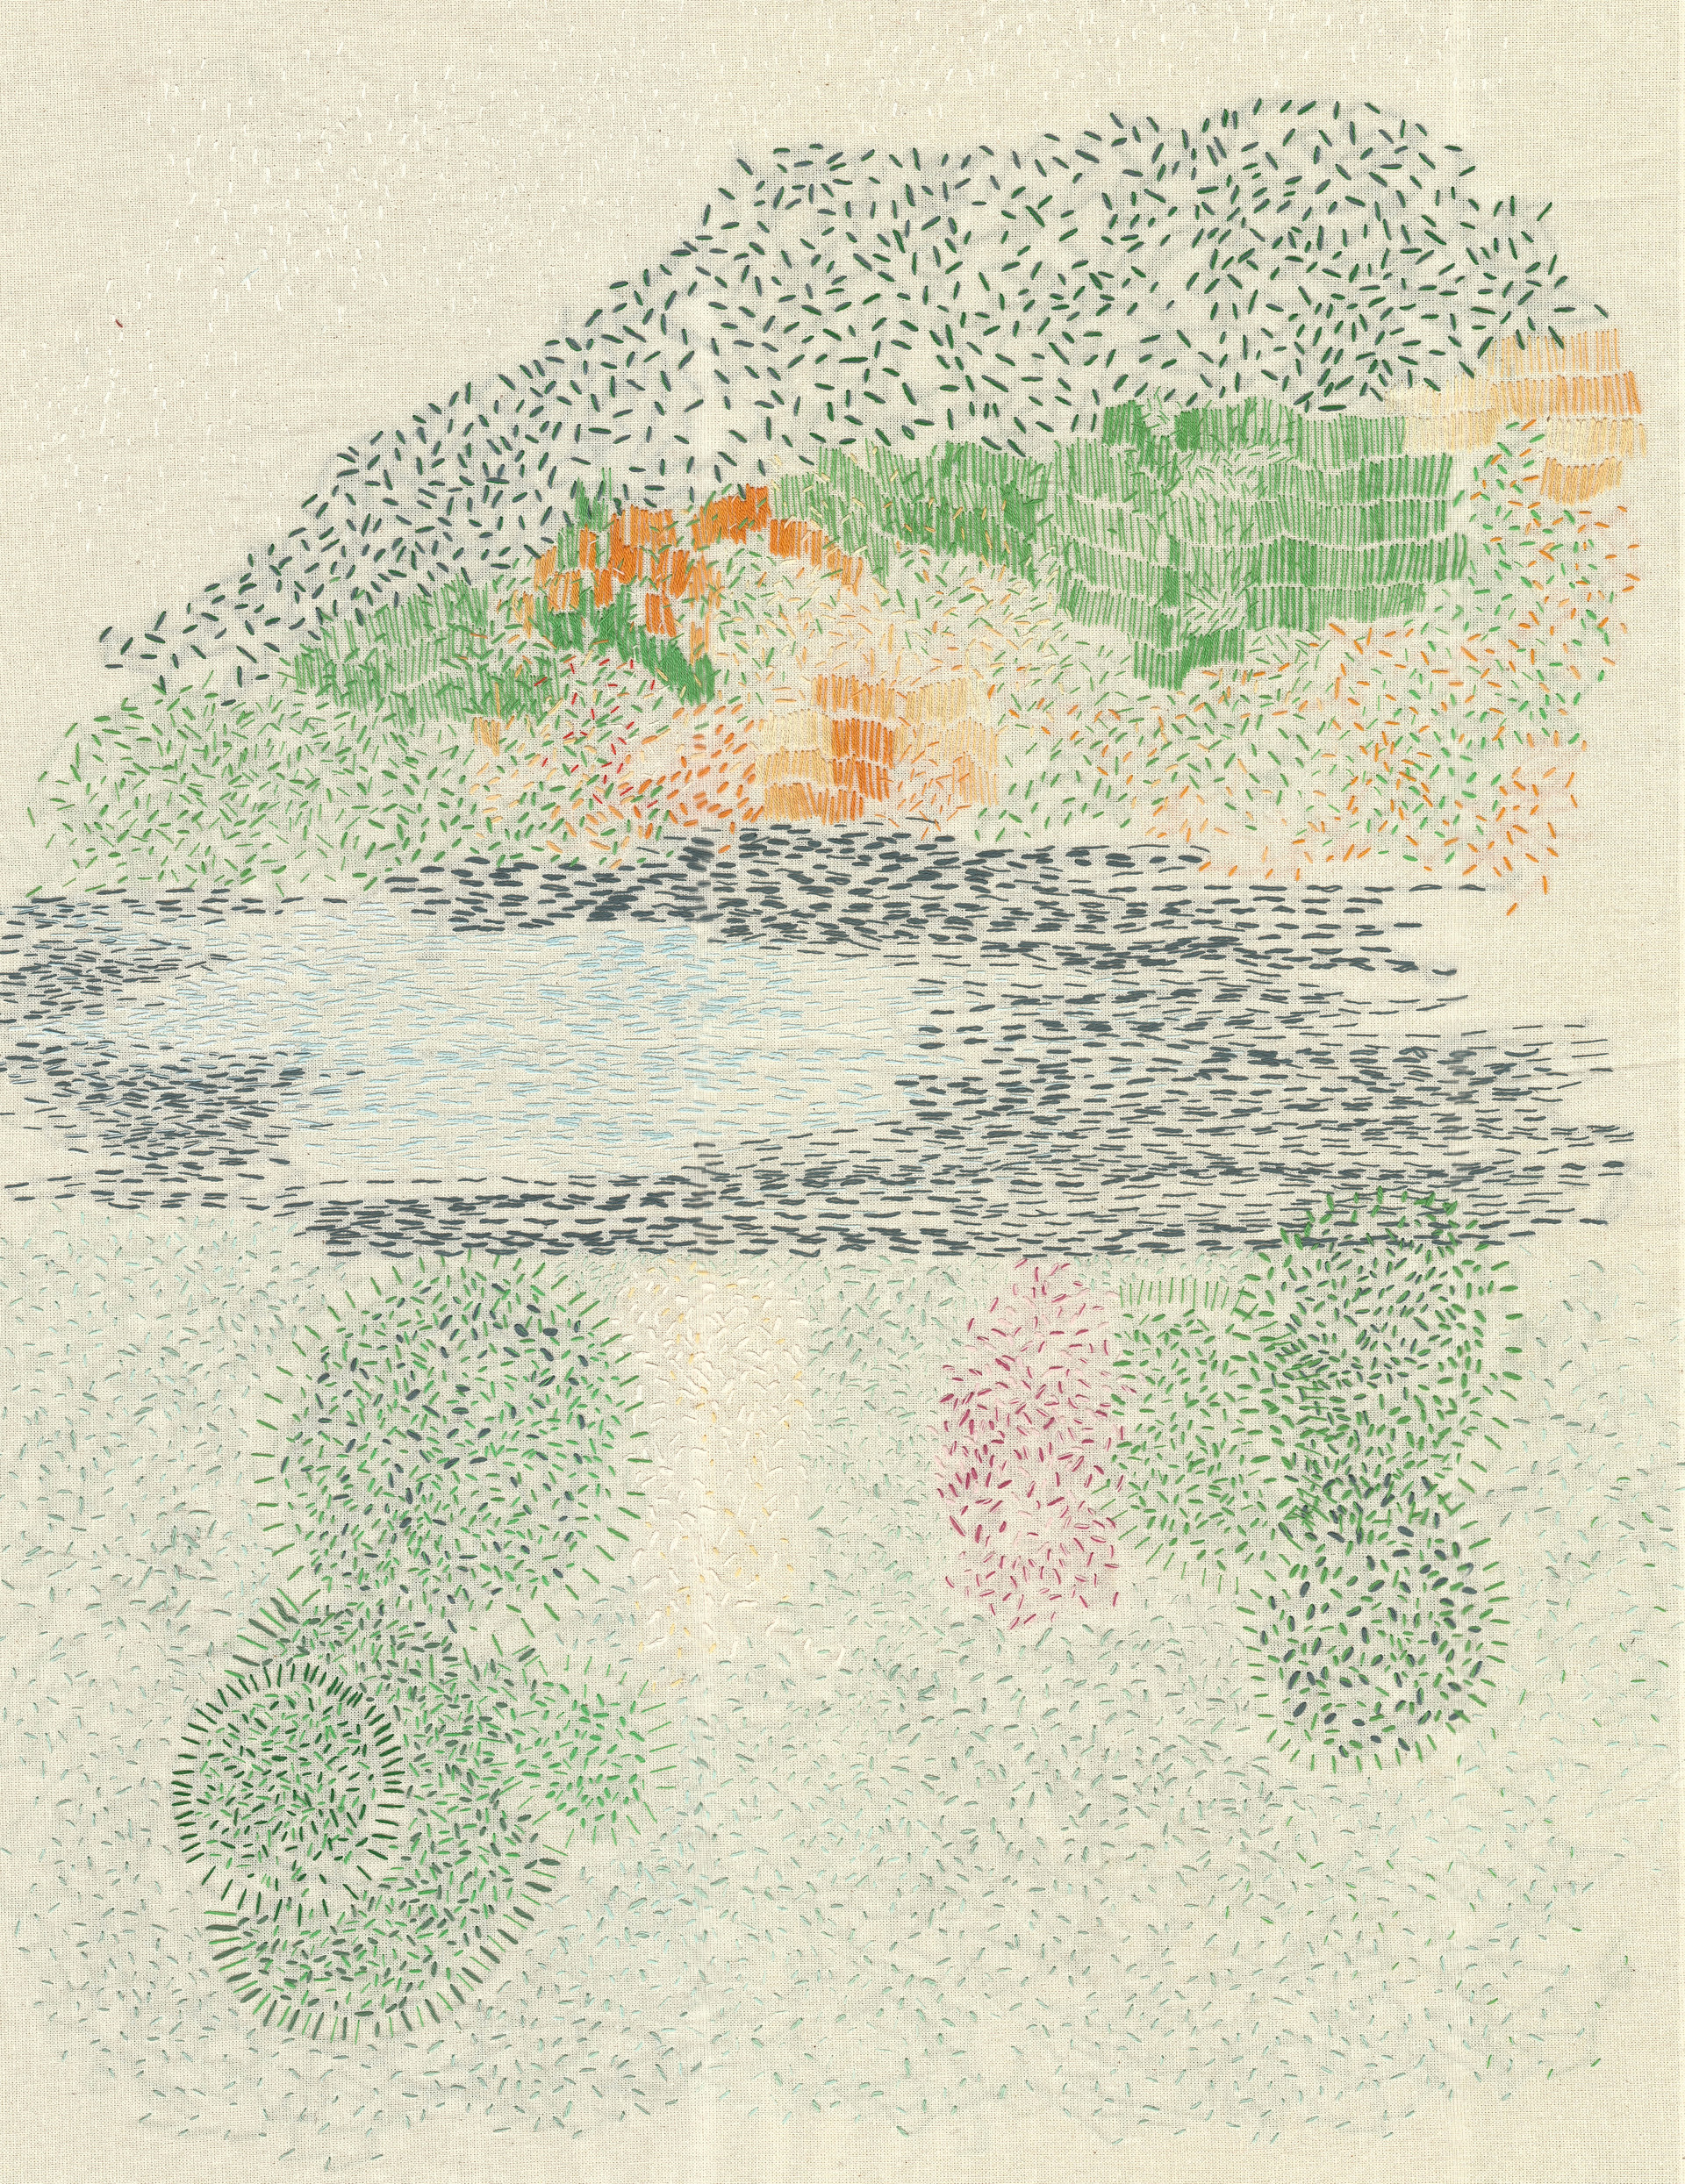 Embriodery to Sonja: My first comission, inspired by a picture of a landscape that ment something to Sonja